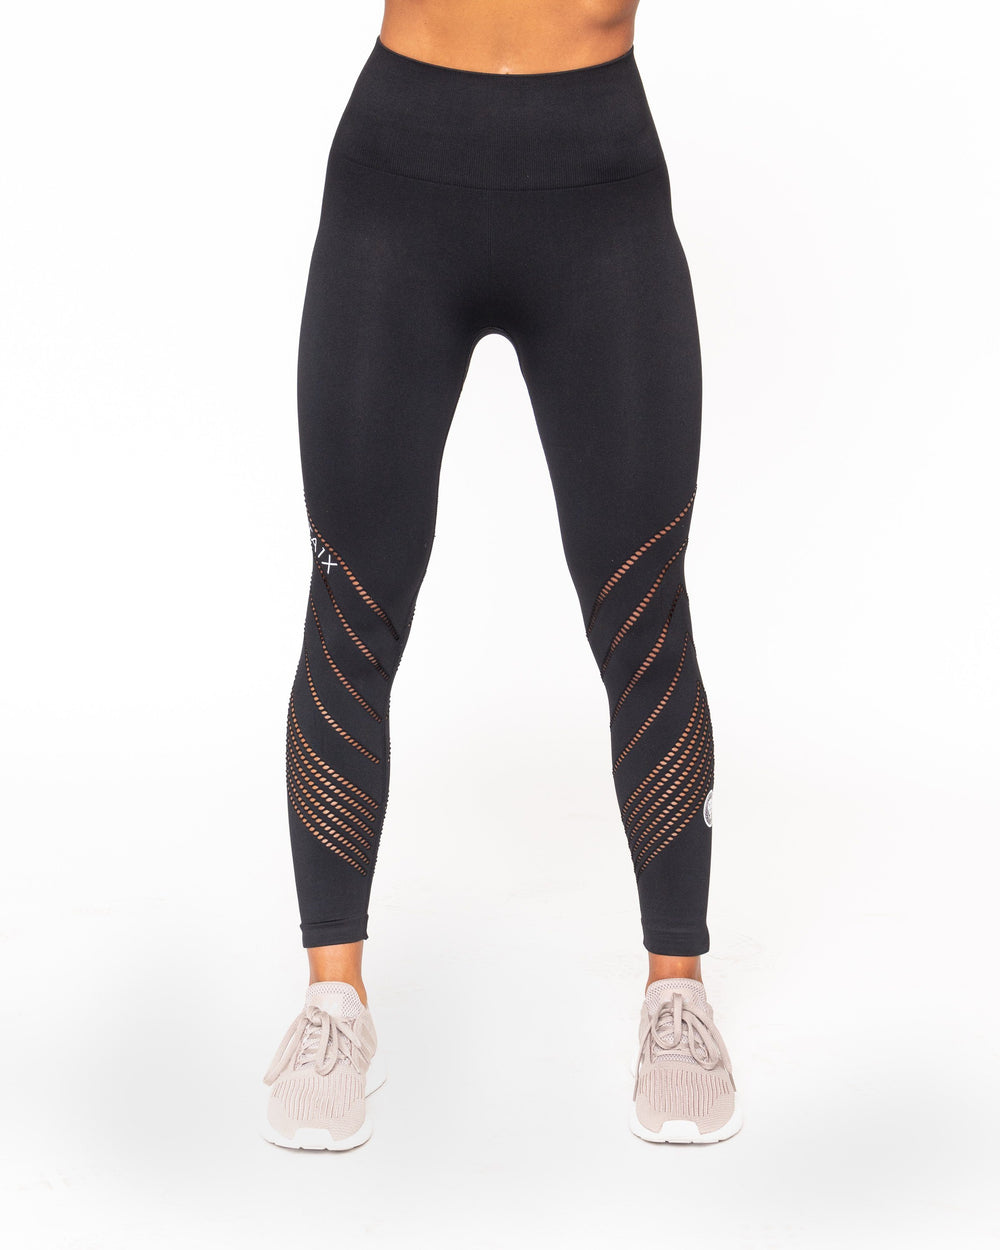 Vike Leggings - Black STAIX XS-S